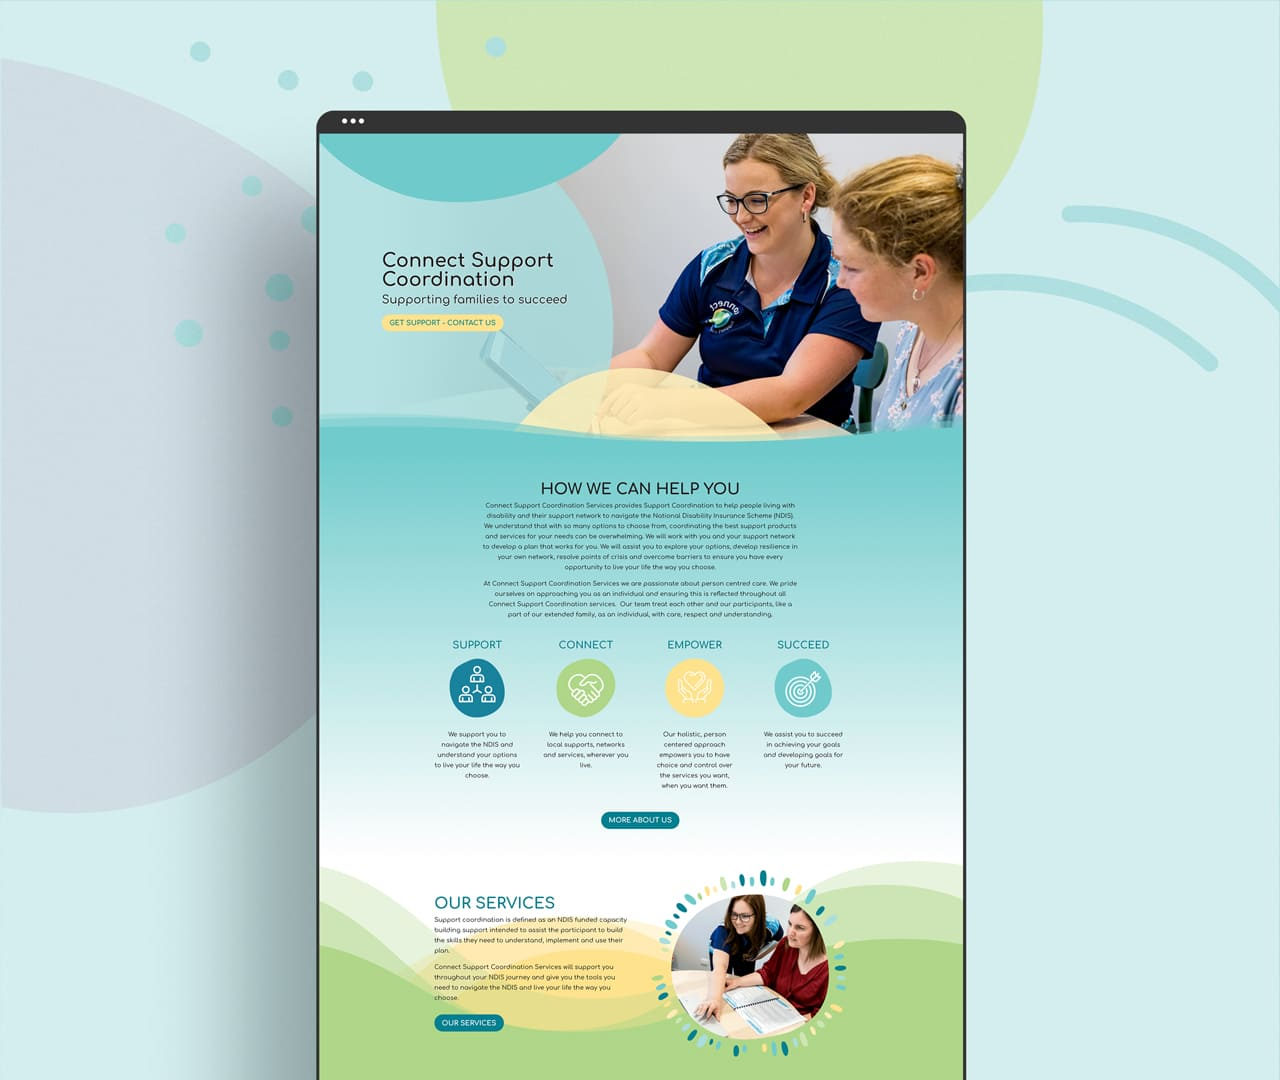 Lumina Design House Project : Connect Support Coordination - Website Design